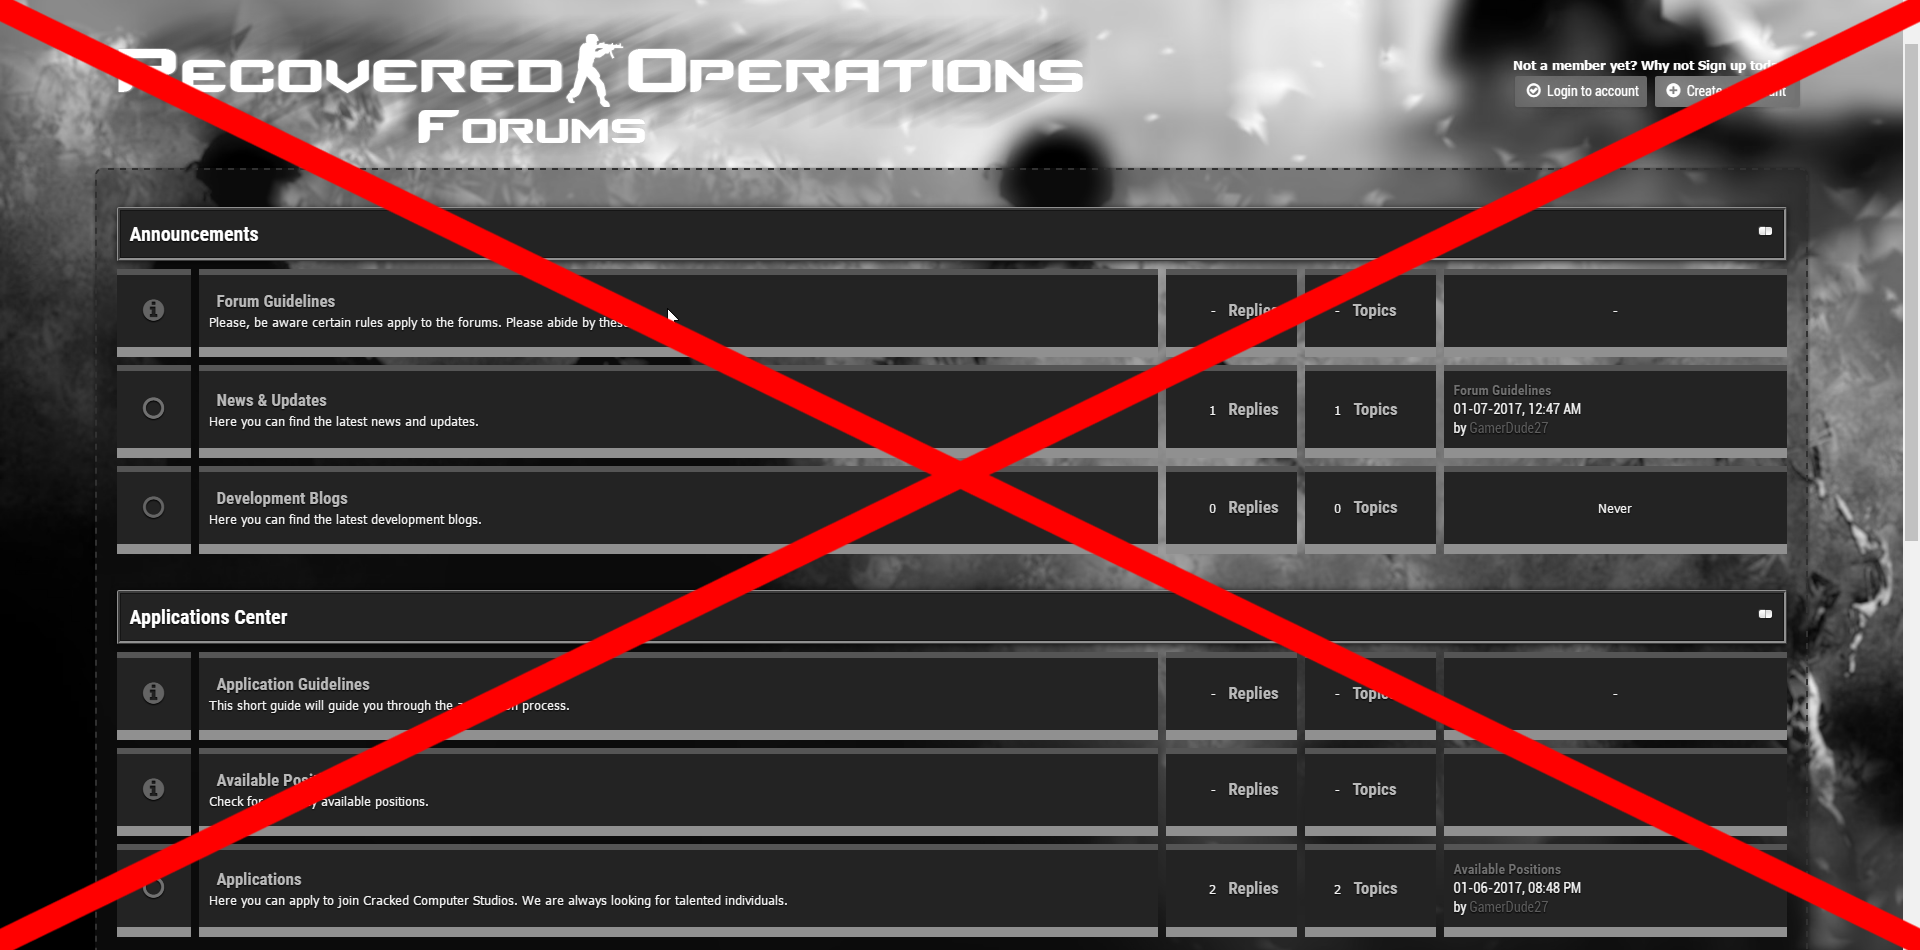 R.I.P. Recovered Operations Forums